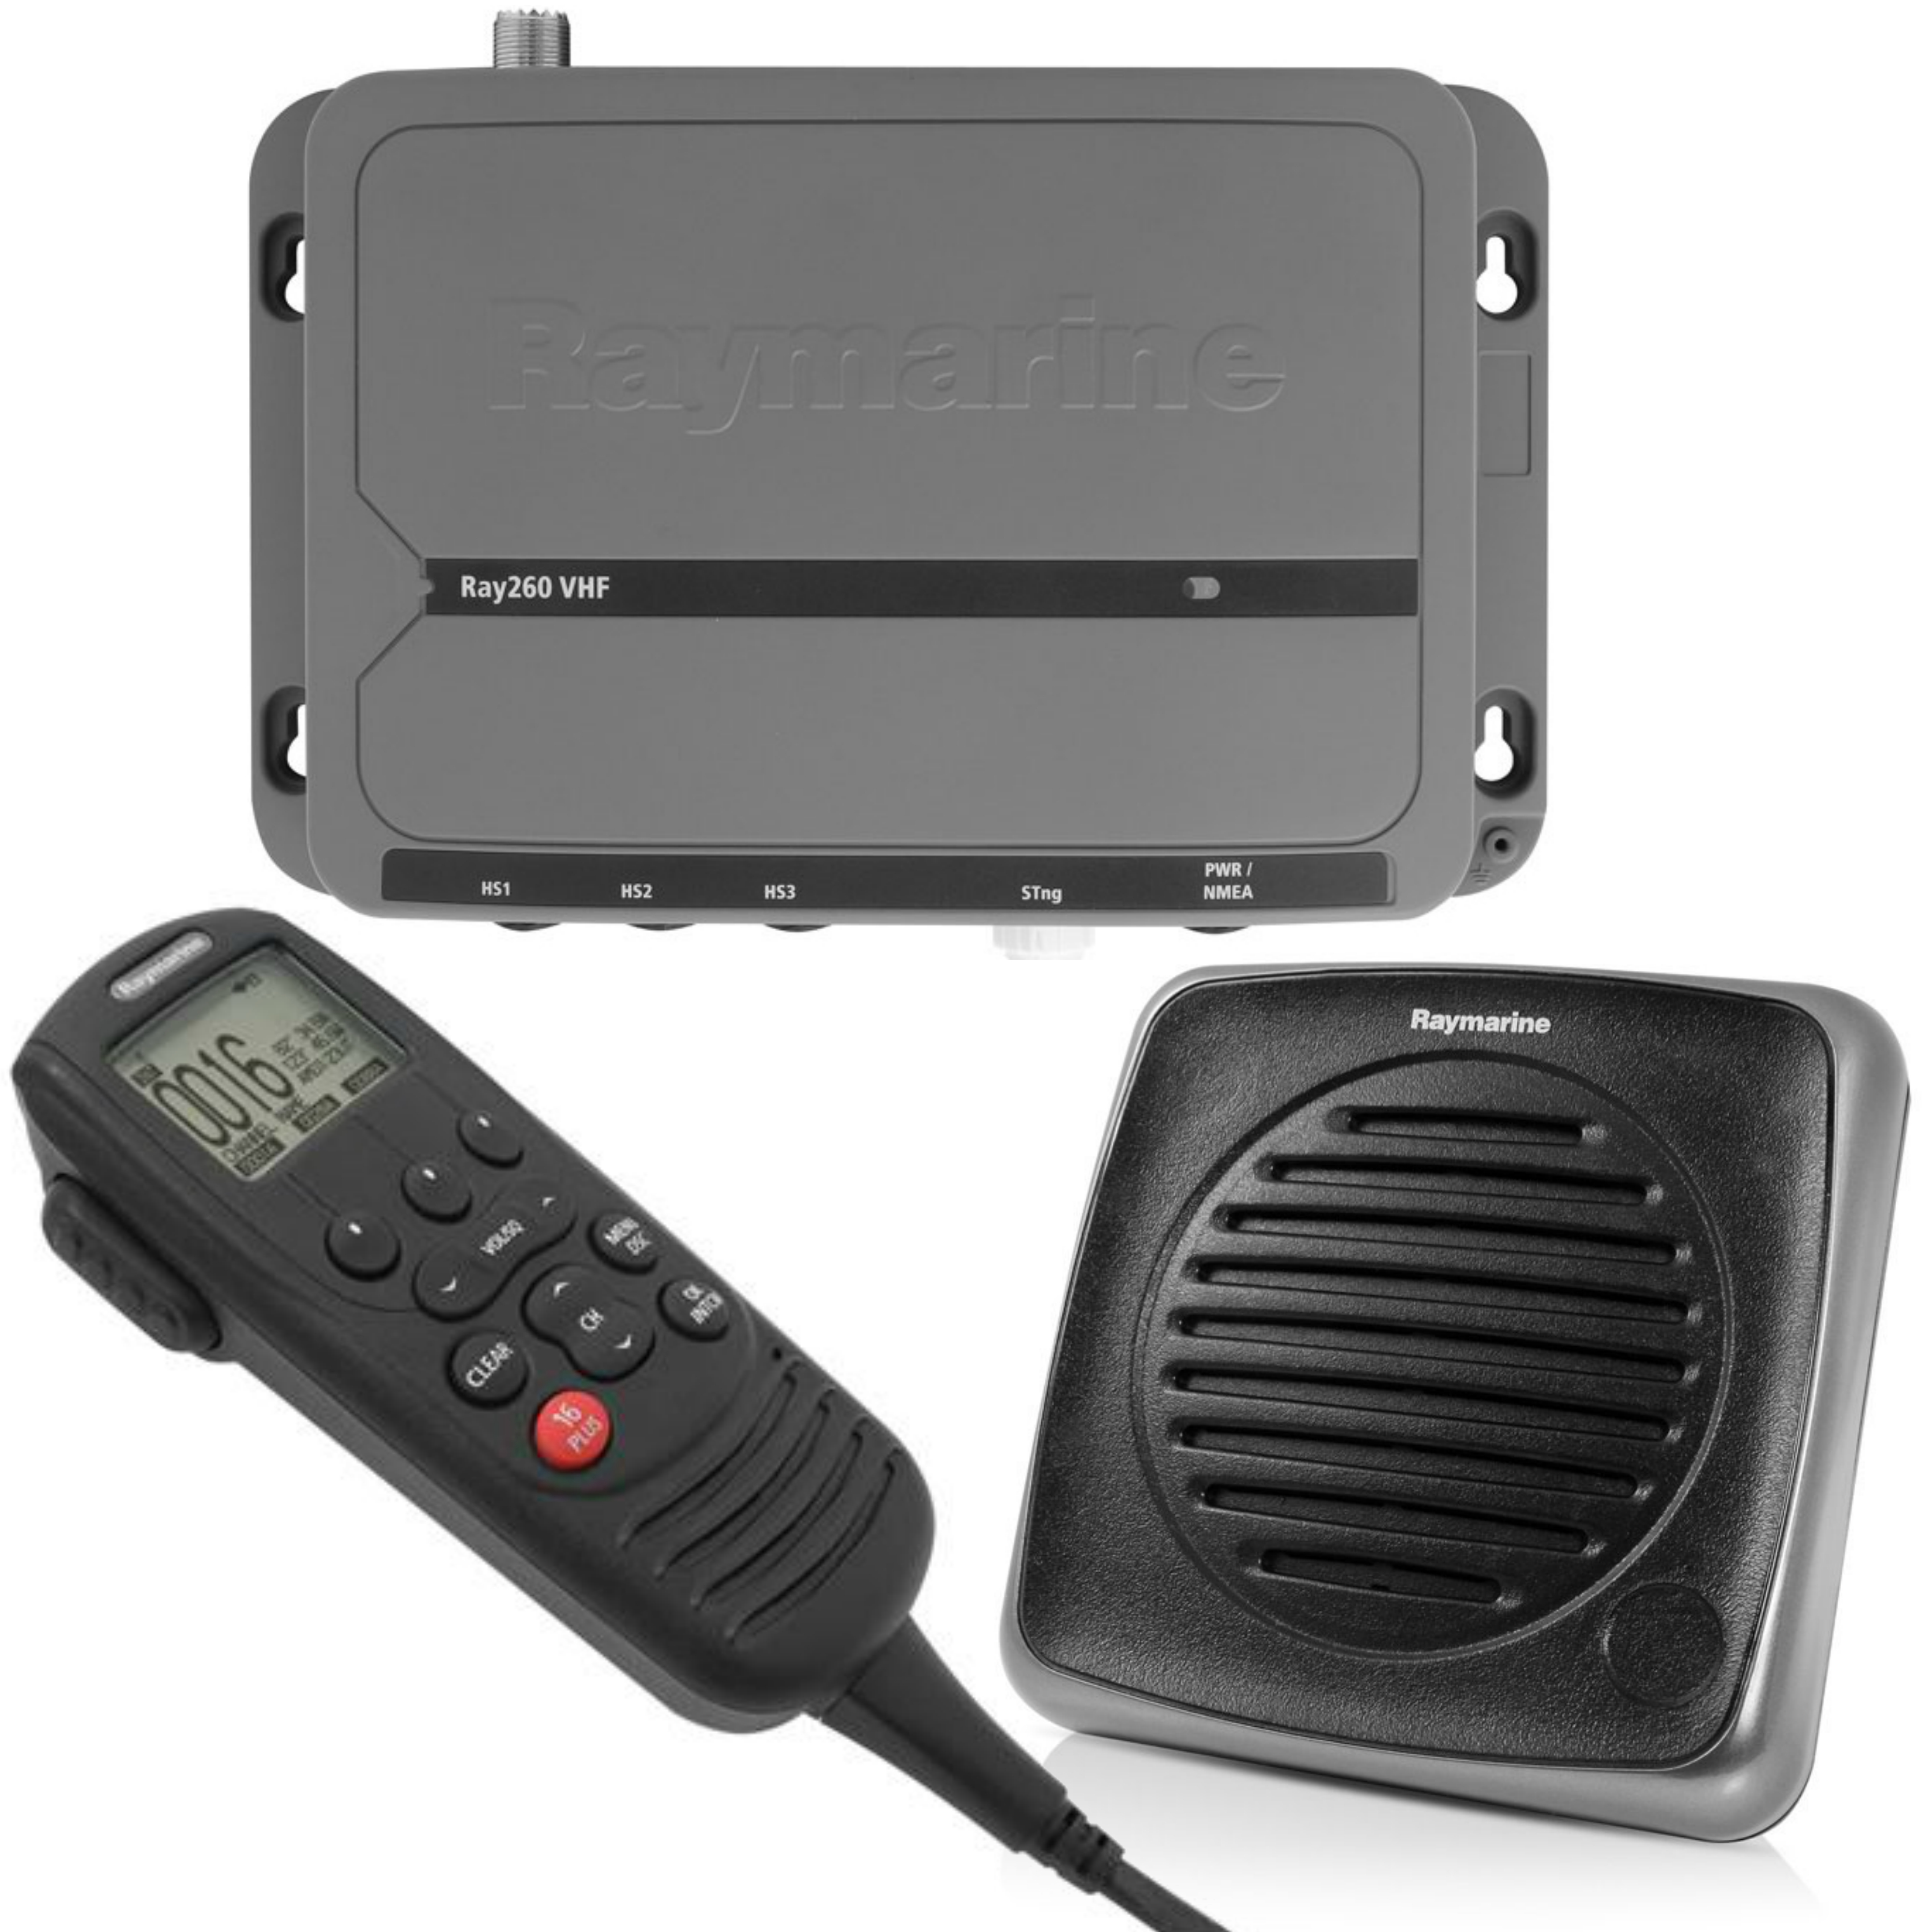 Raymarine E70090|RAY 260 VHF Radio|AIS-Receiver|25W|Class-D DSC|Full-Featured|For Marine